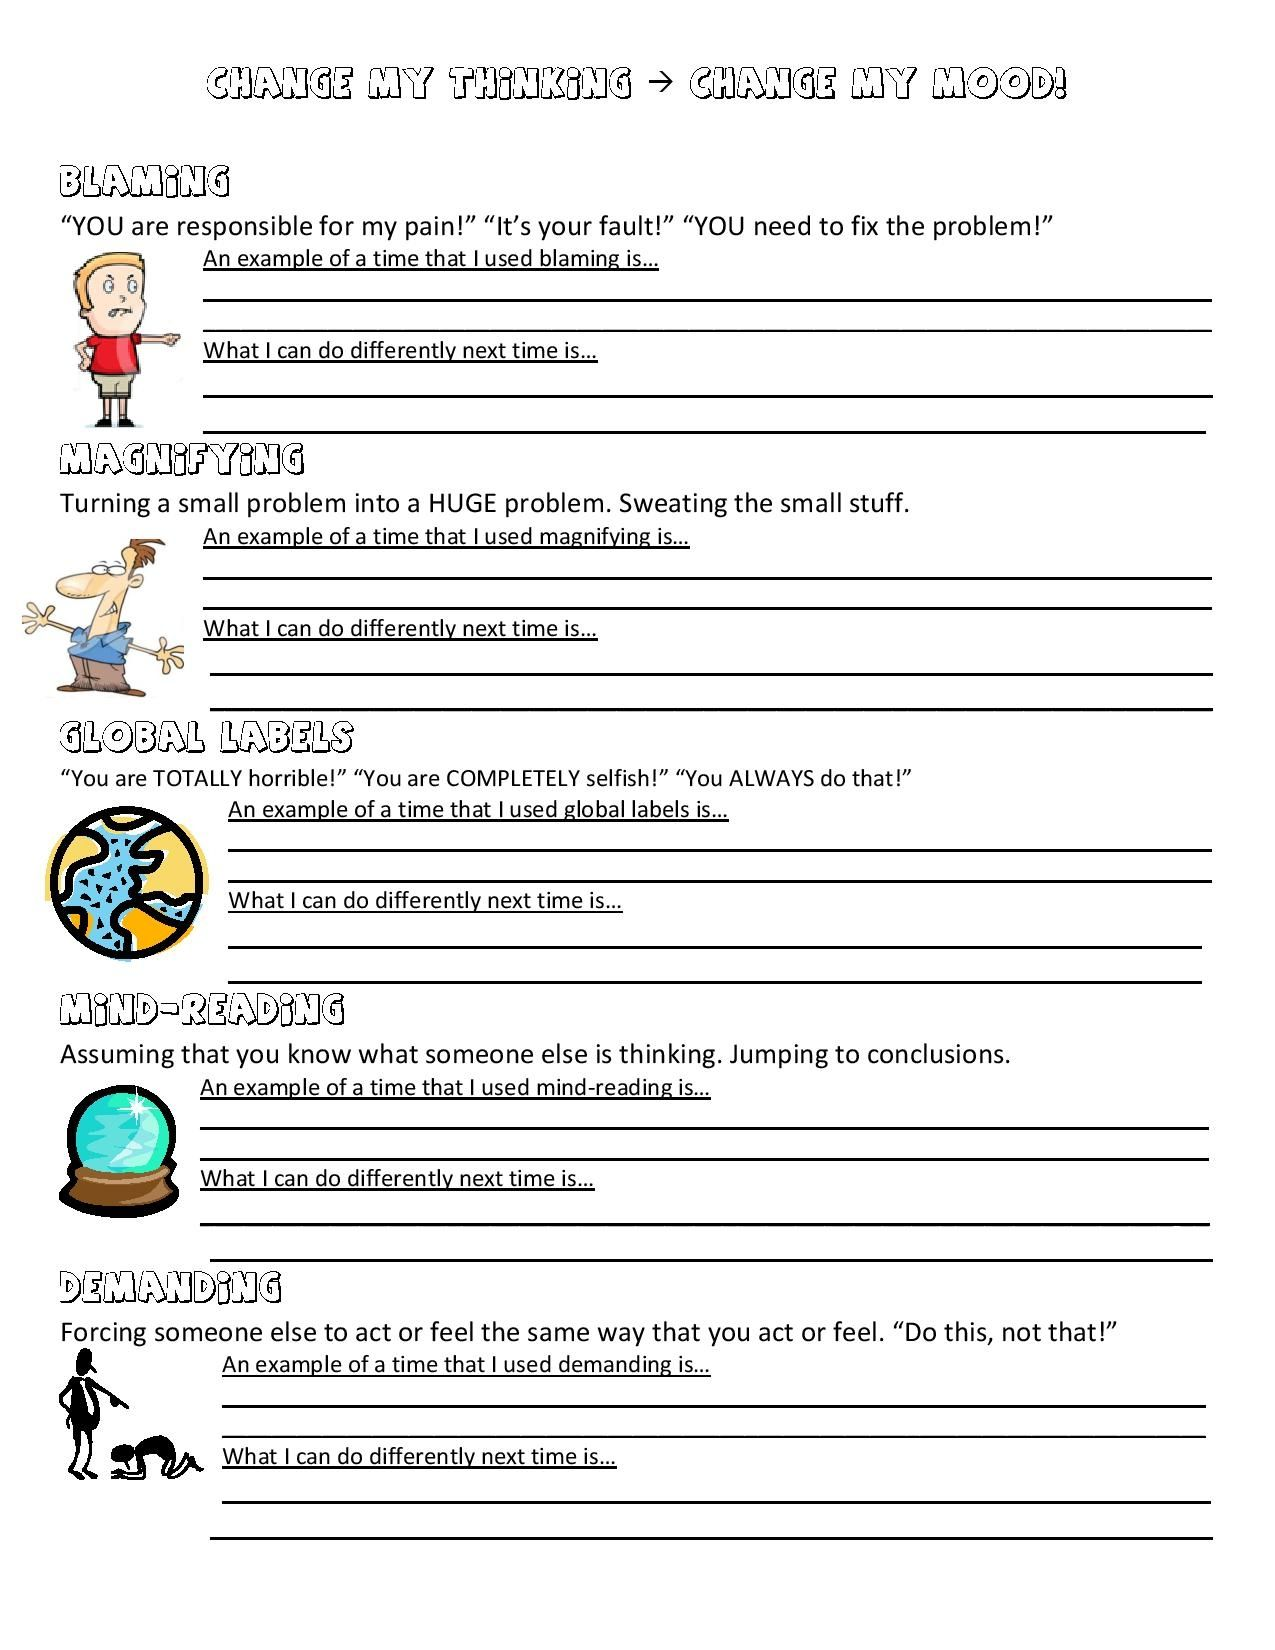 Anger Management Worksheet Mental Health Experiences Counseling